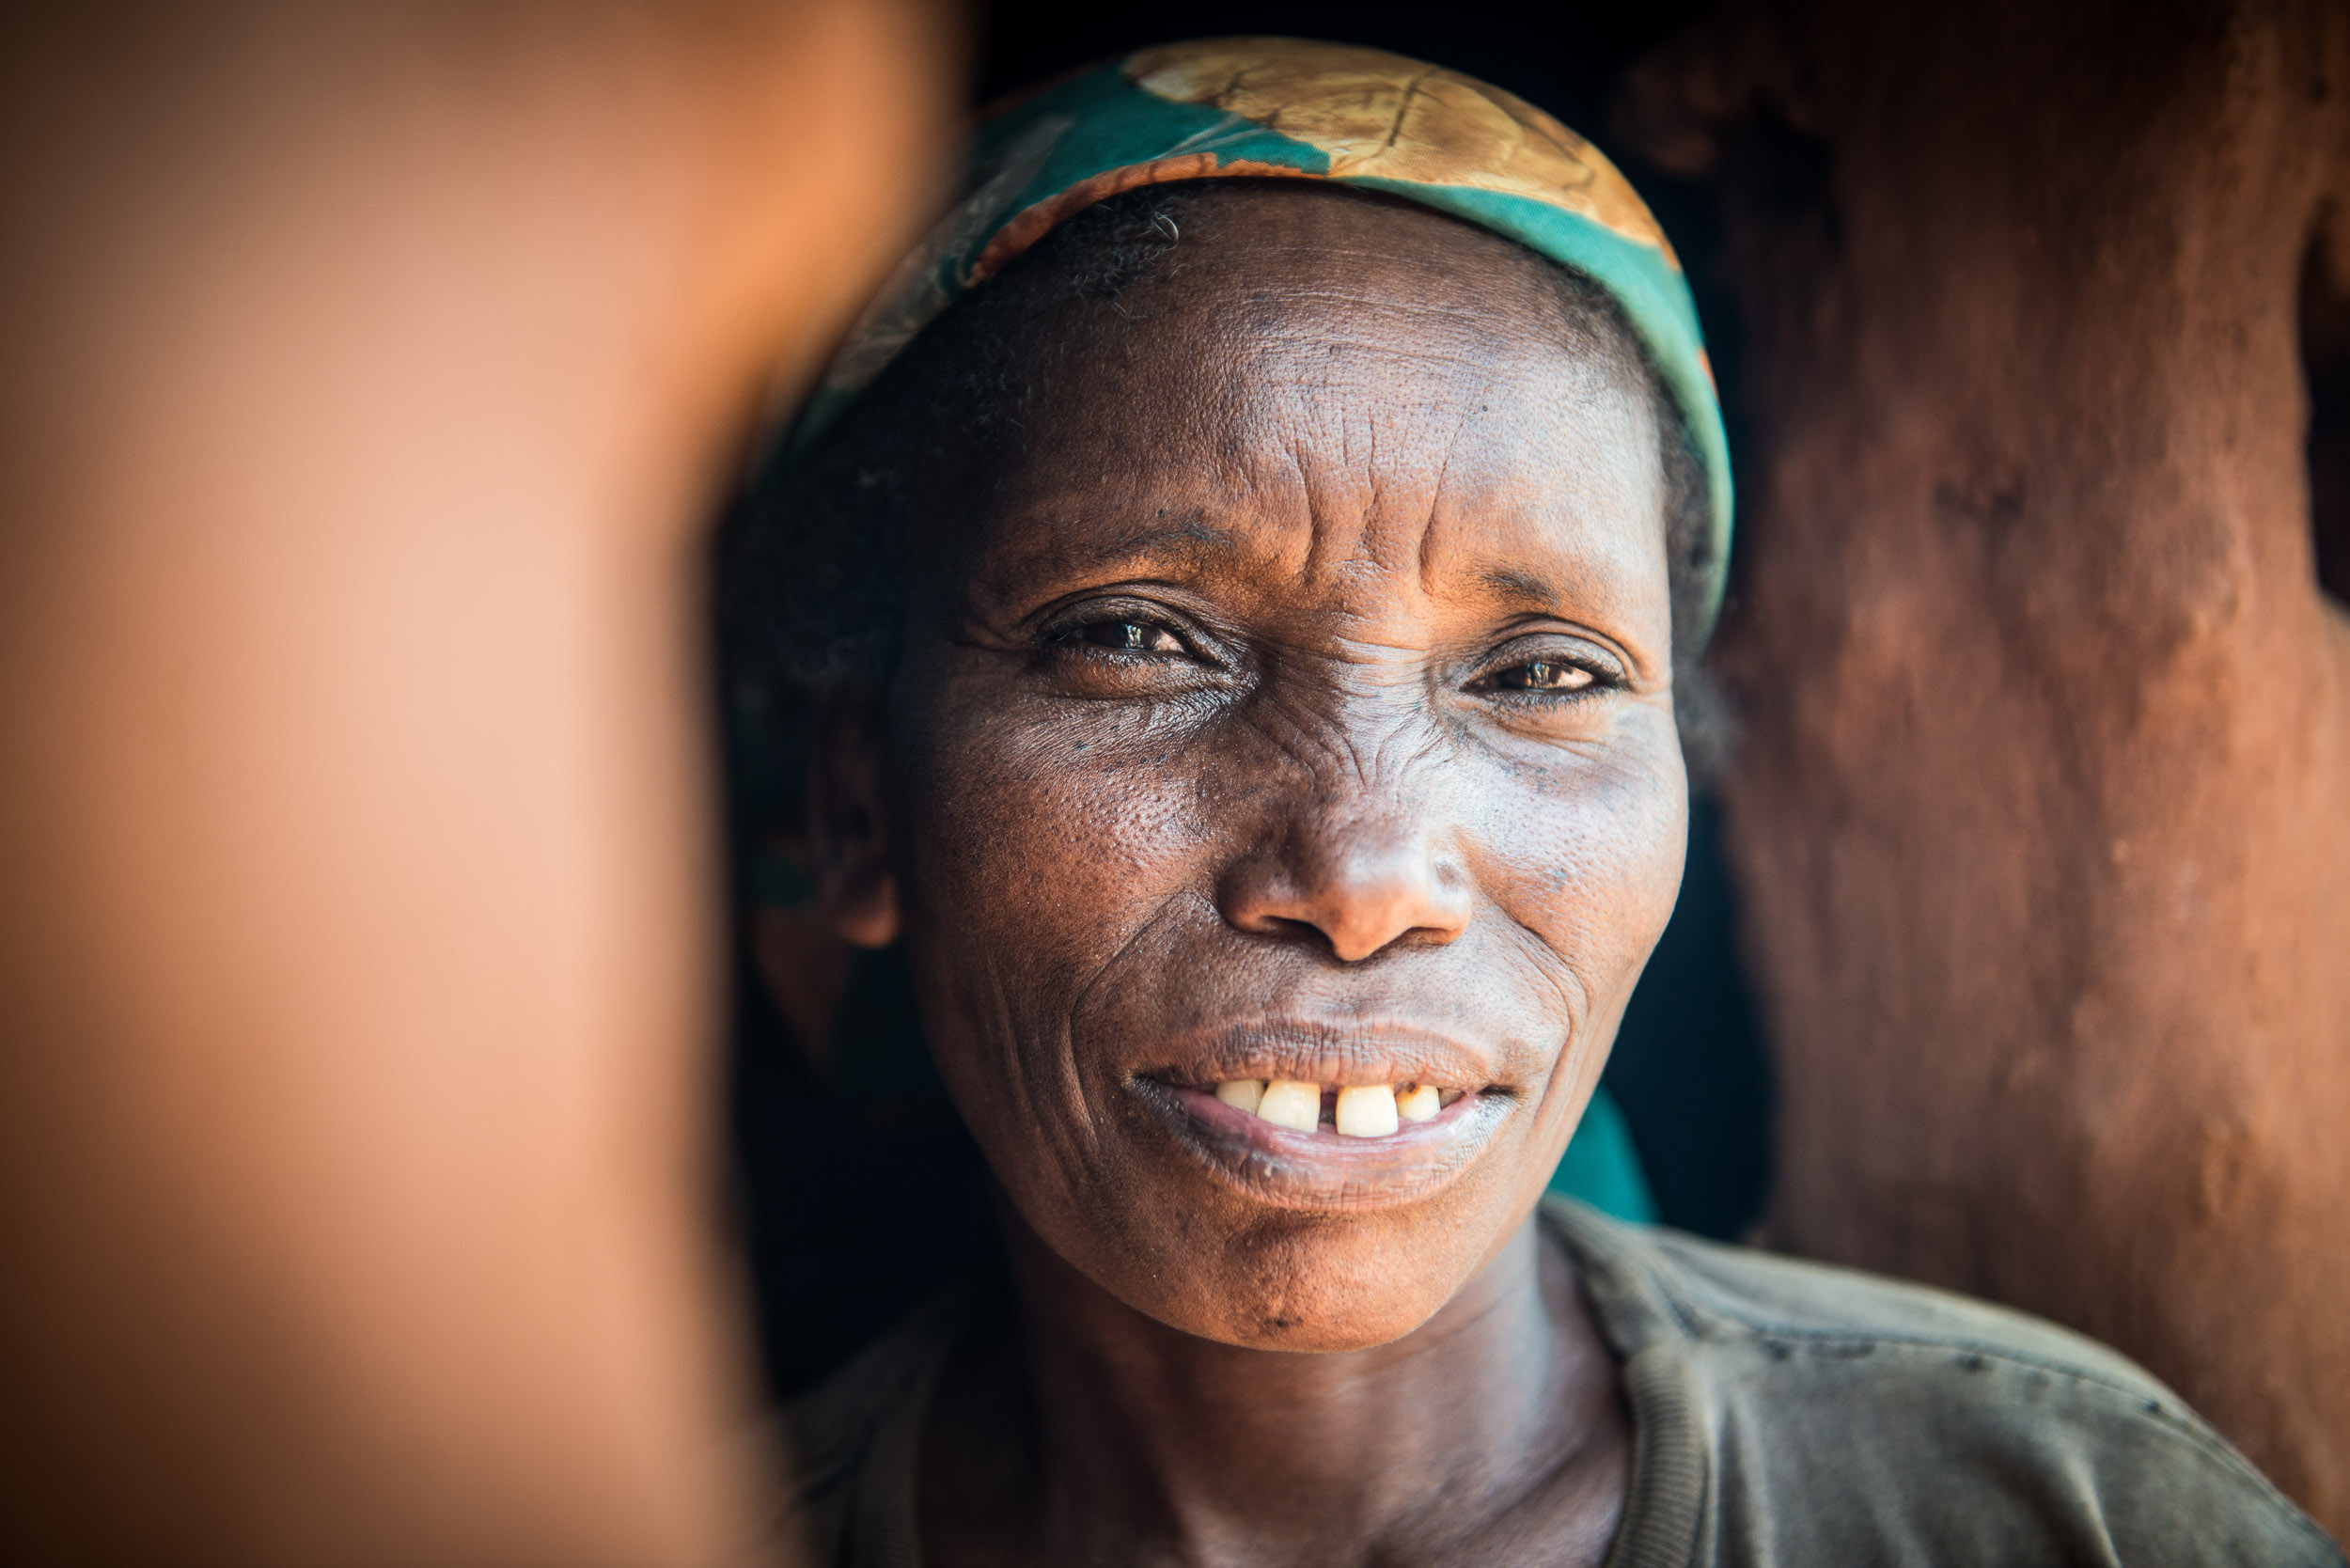 Rwanda woman at refugee camp - Travel - Photo credit Nicola Bailey.jpg